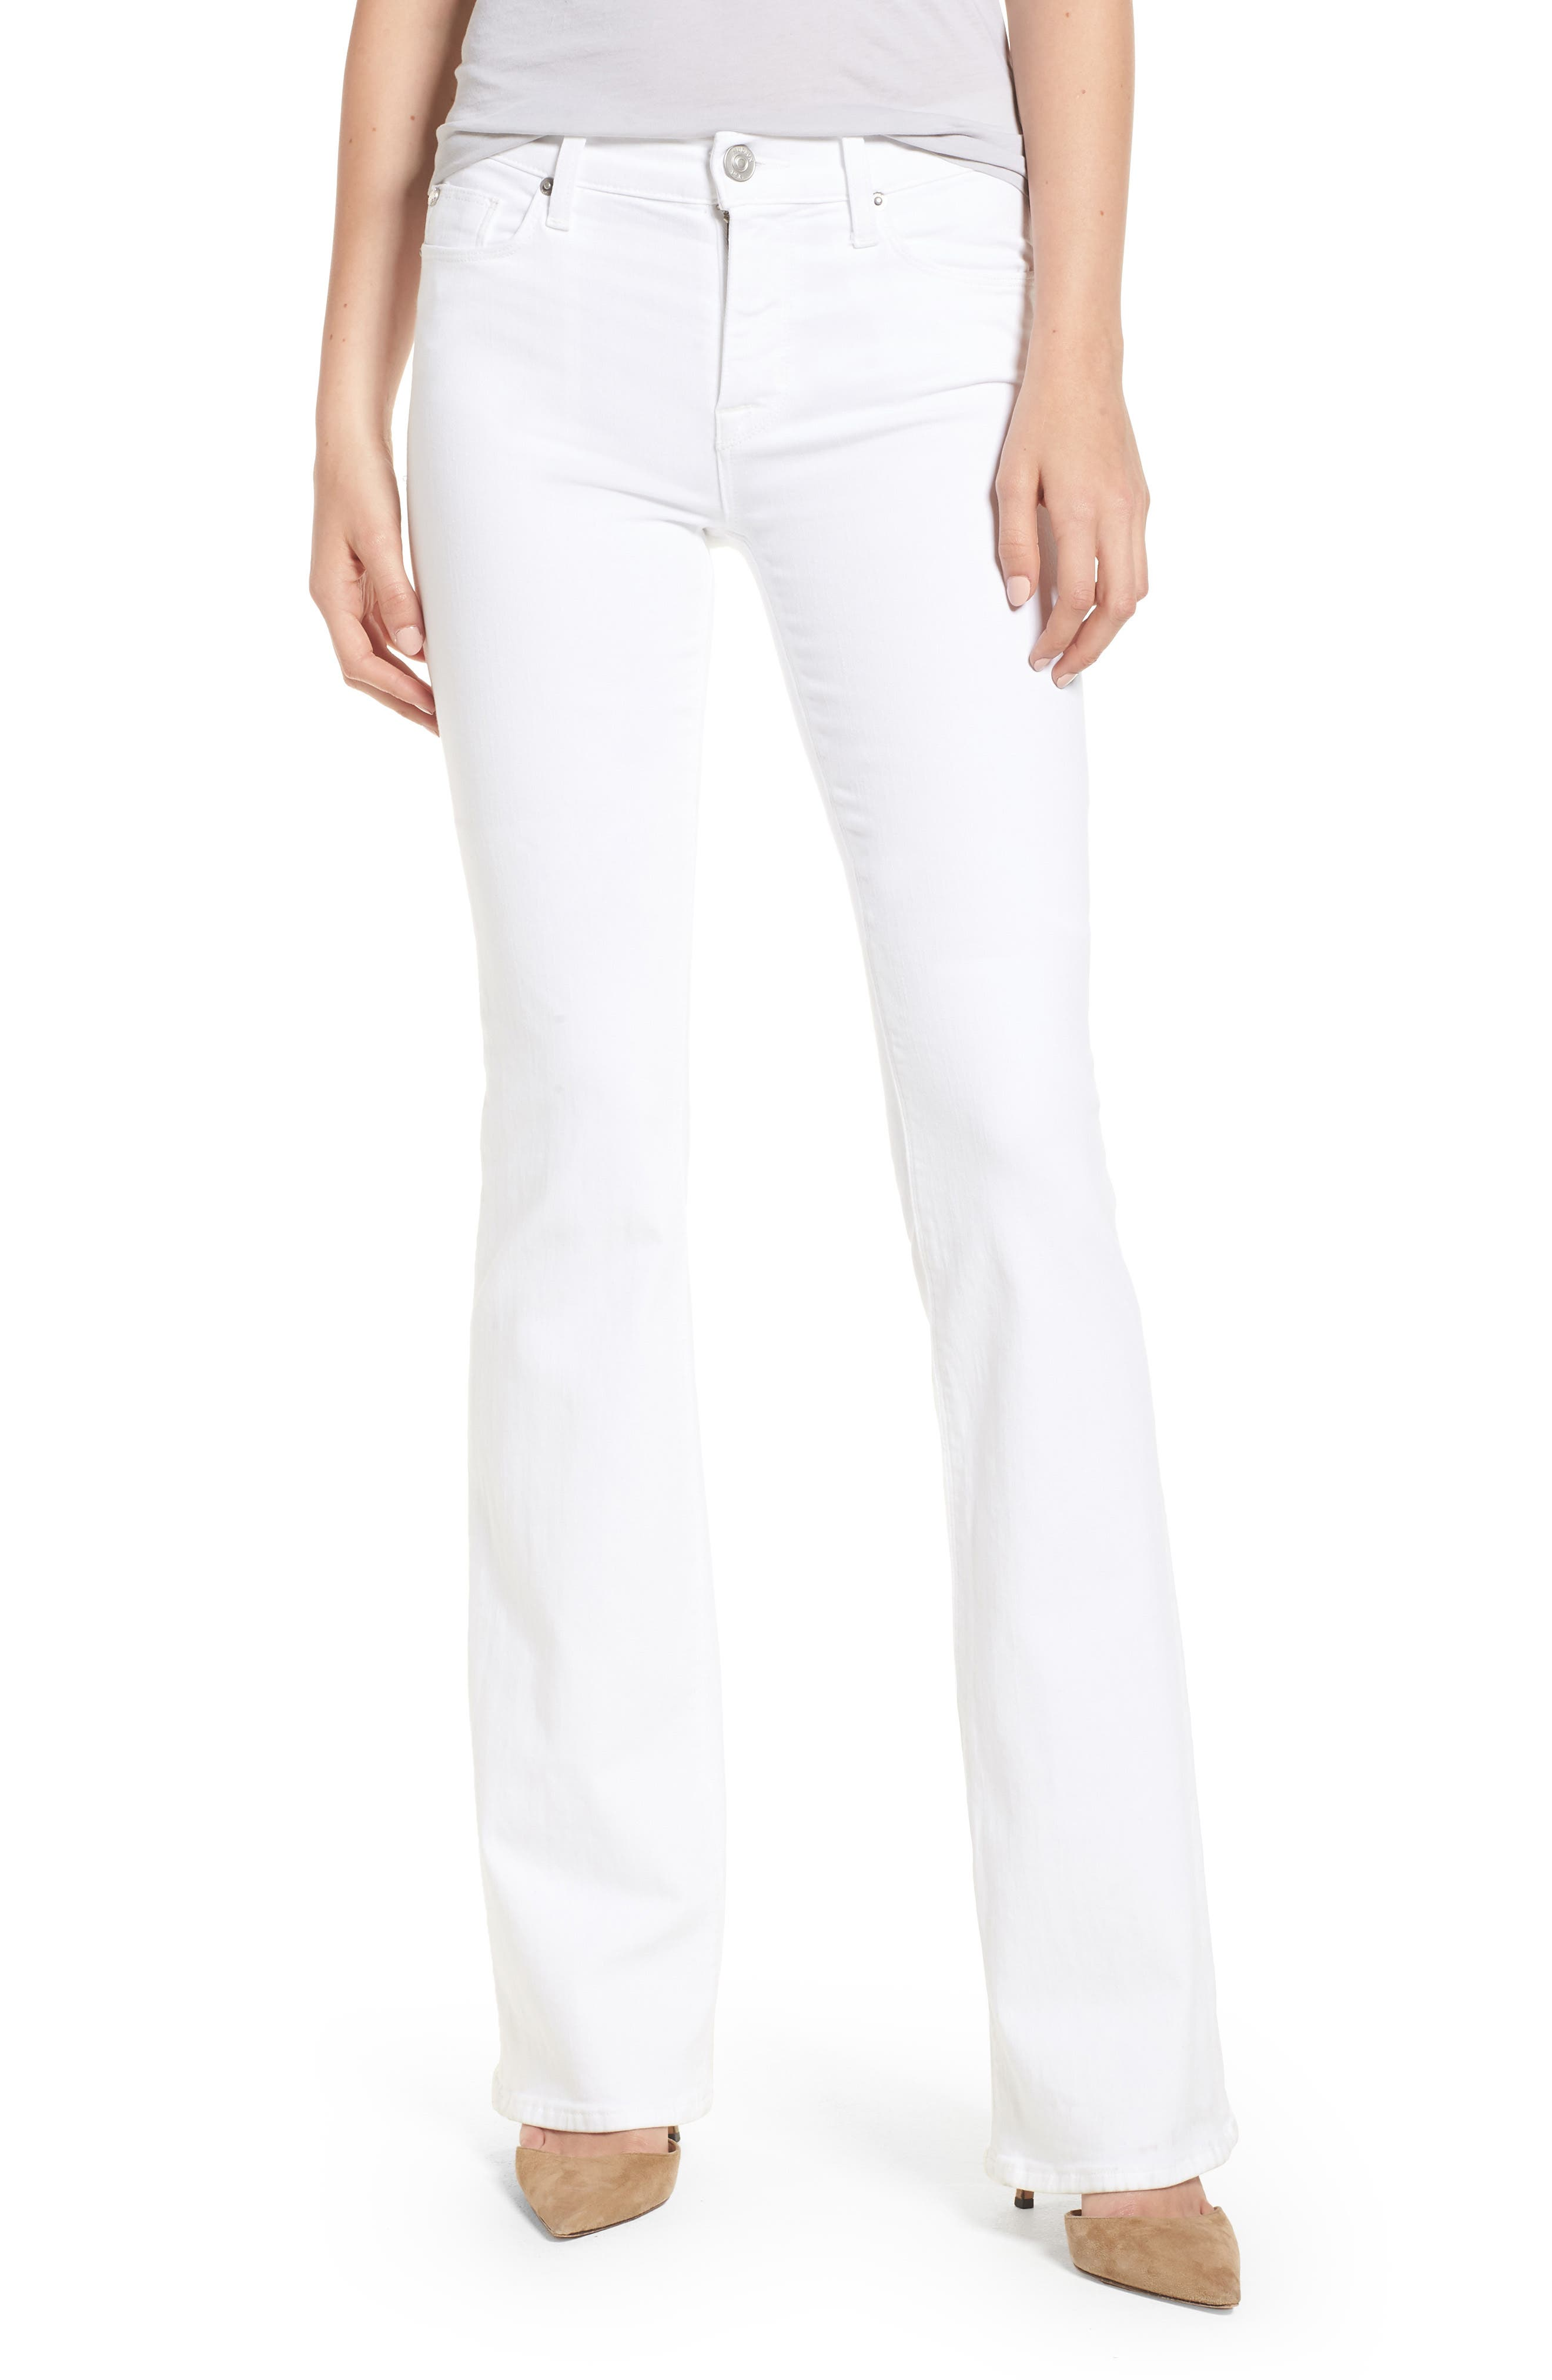 Drew Bootcut Jeans,                             Main thumbnail 1, color,                             Optical White